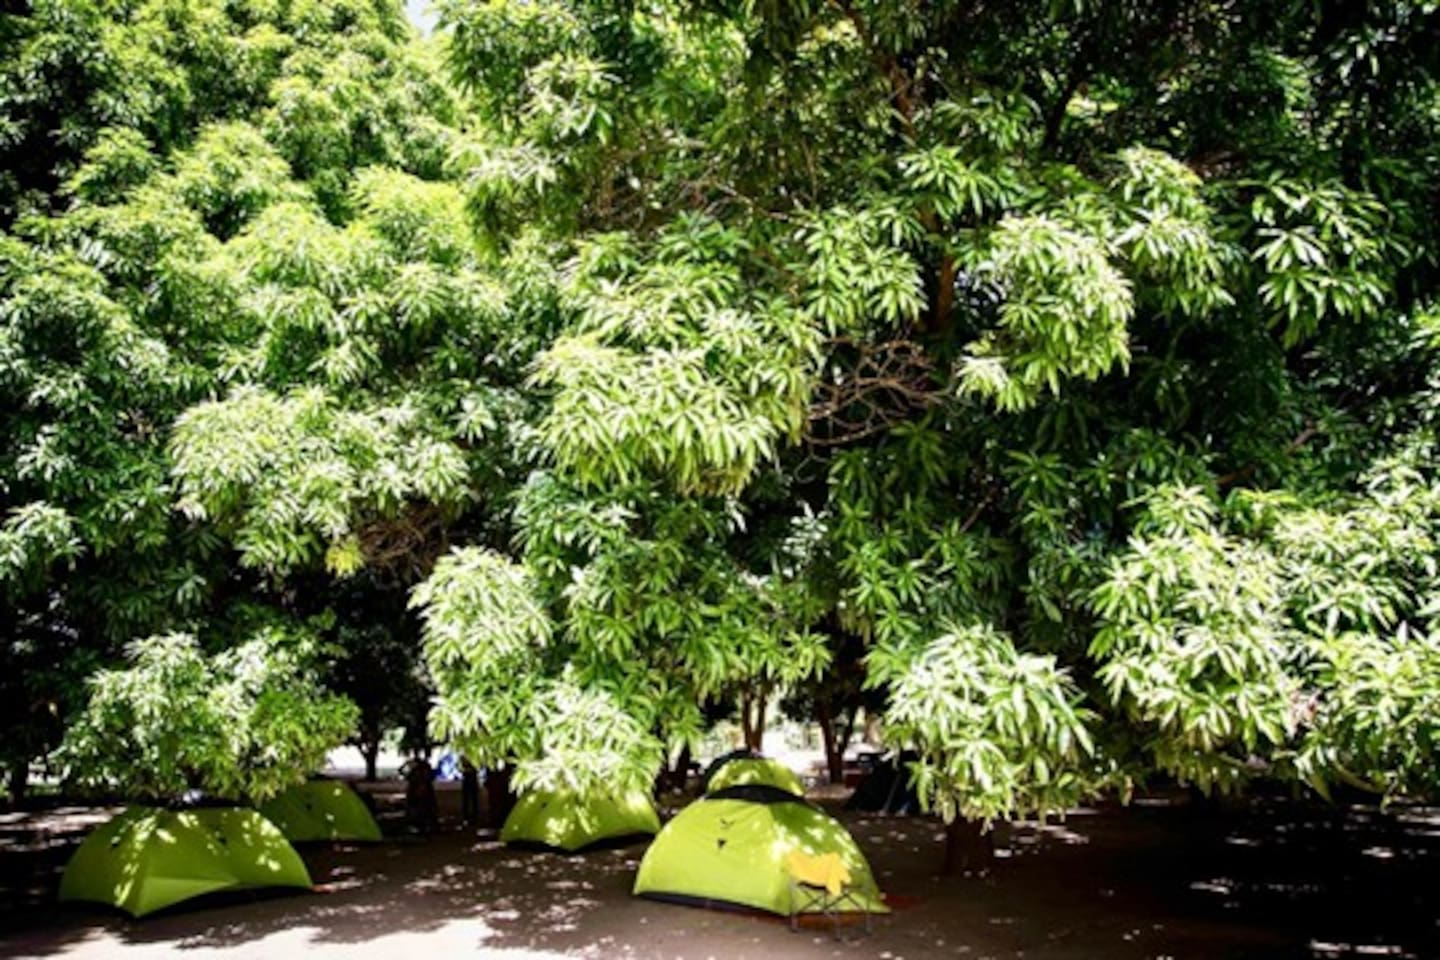 Our campsite with many lush mango trees!